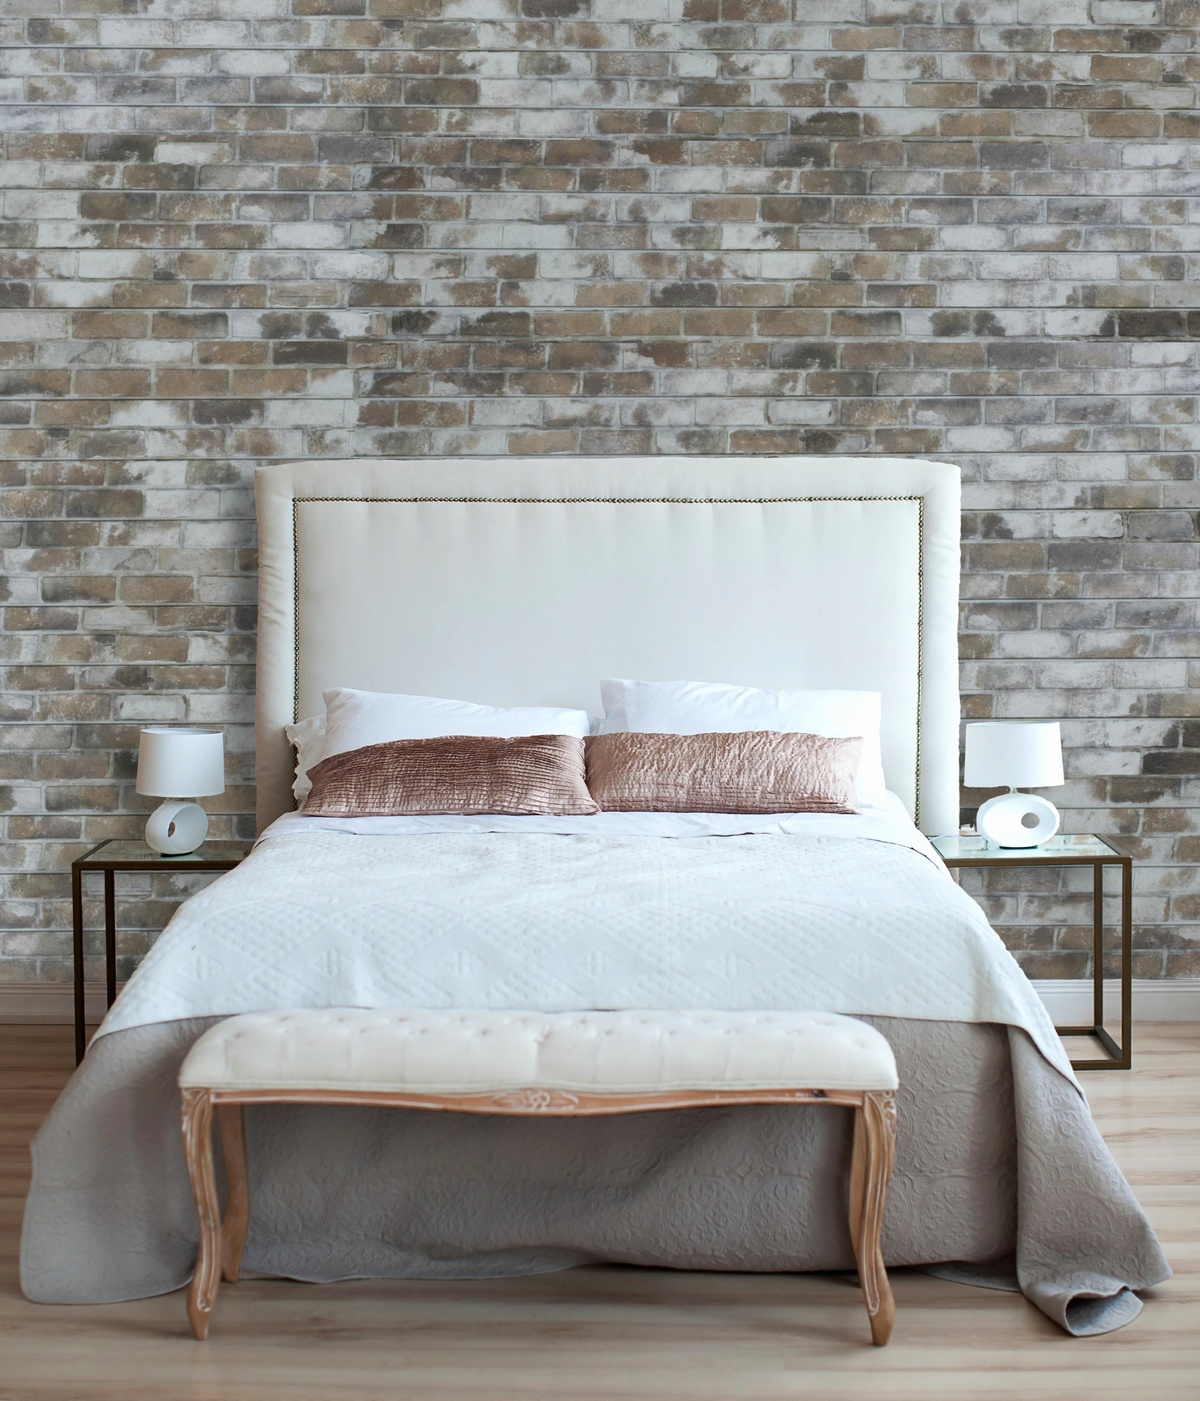 old-painted-brick-bed